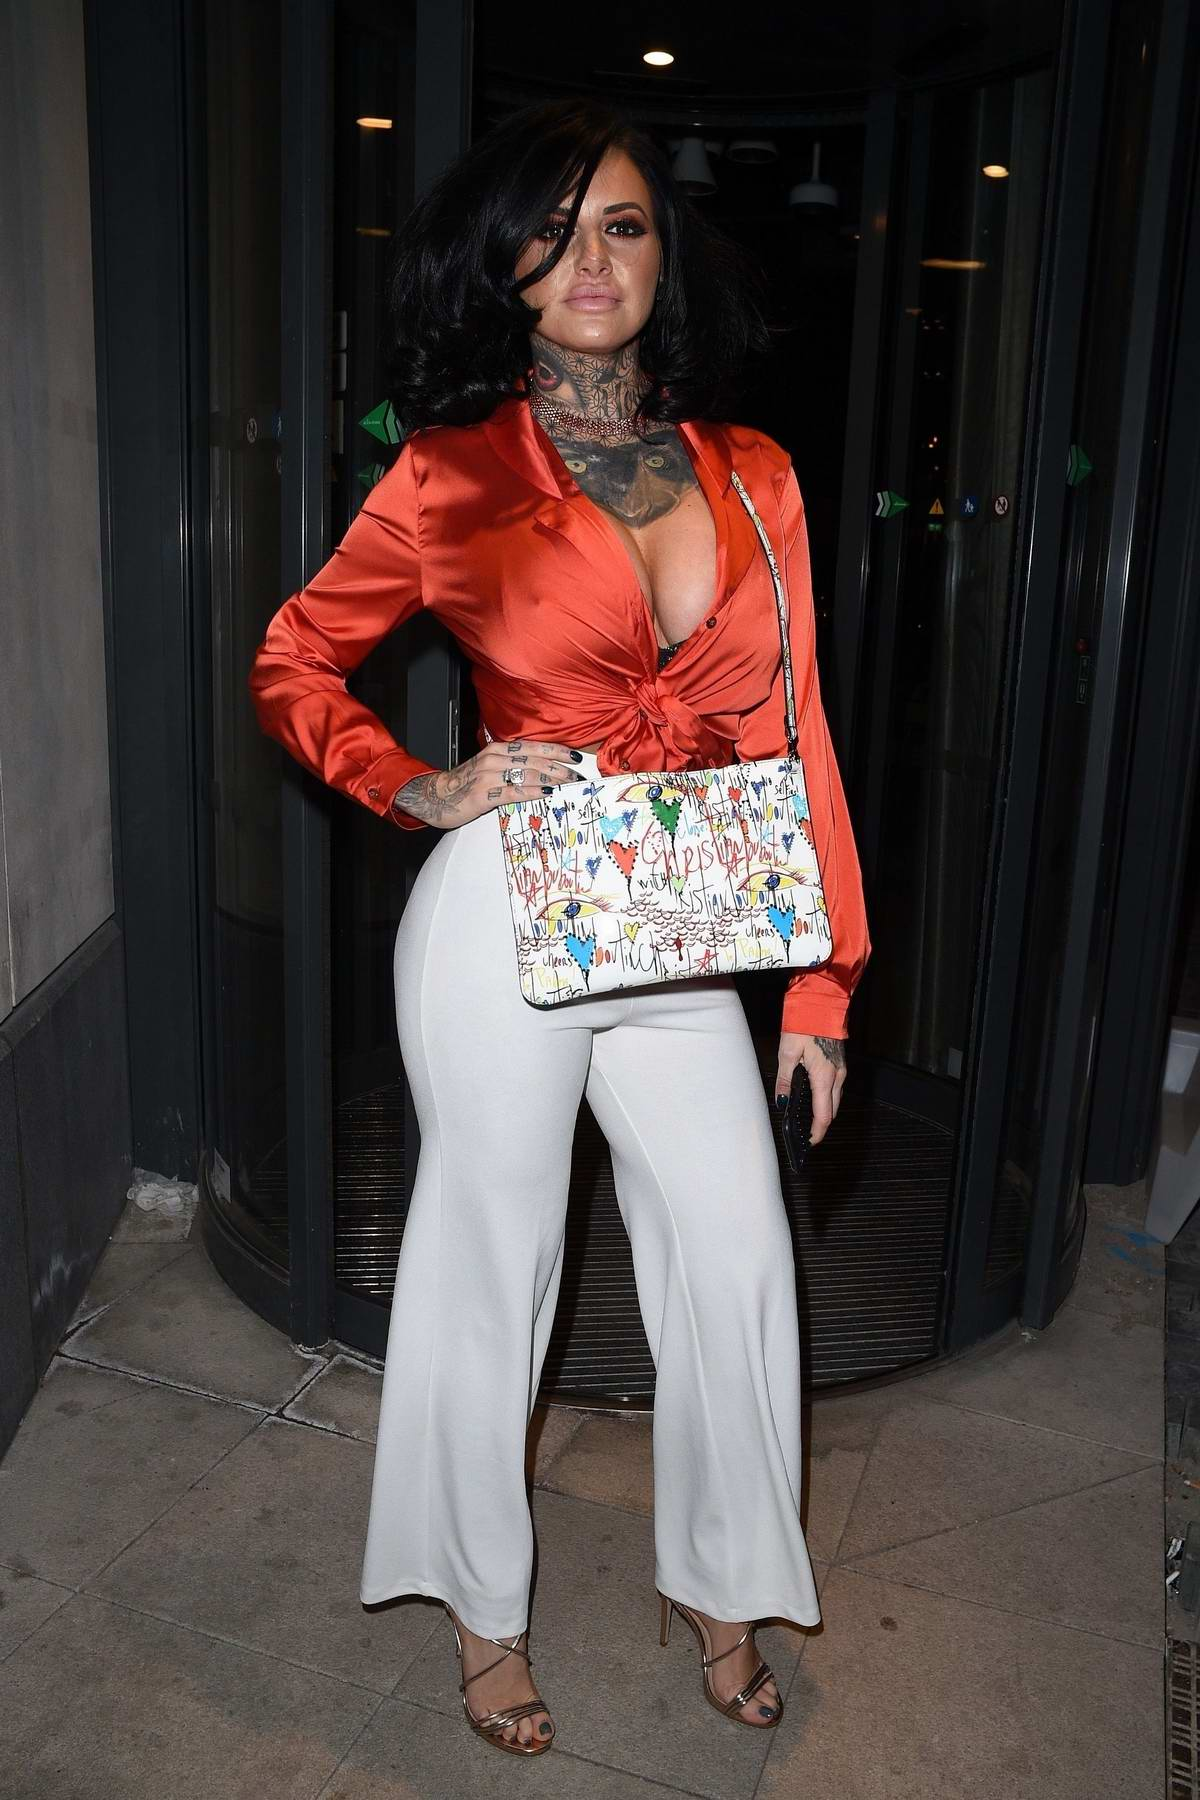 Jemma Lucy heads to a boxing event in Stratford, UK